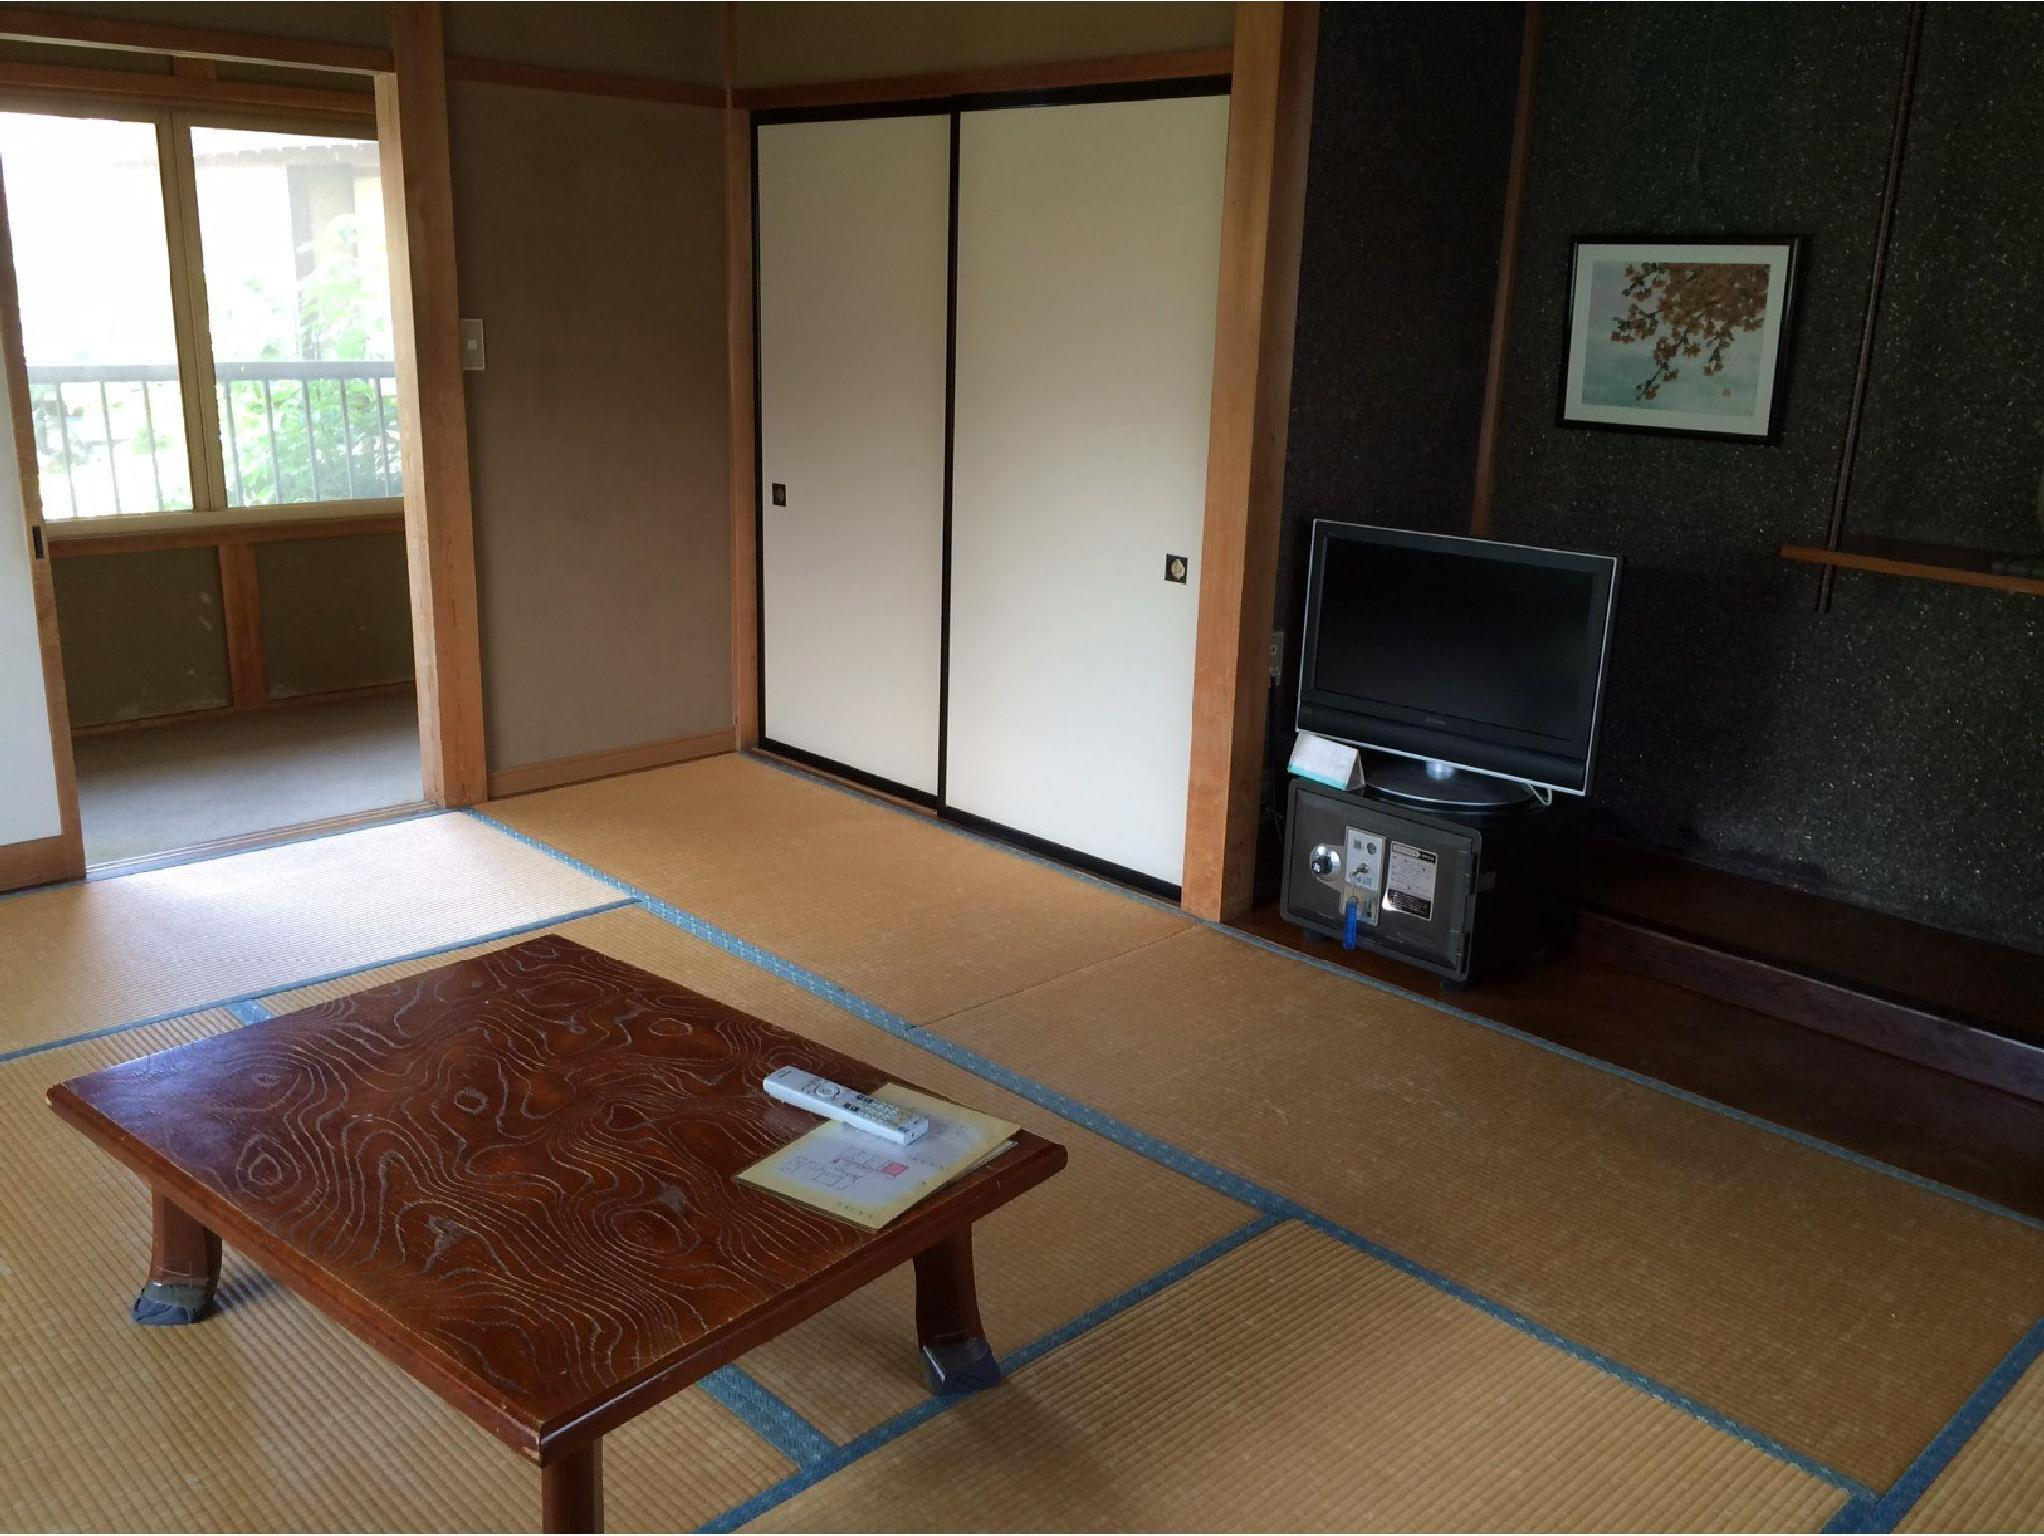 Japanese Style With Shared Bathroom For 2 people